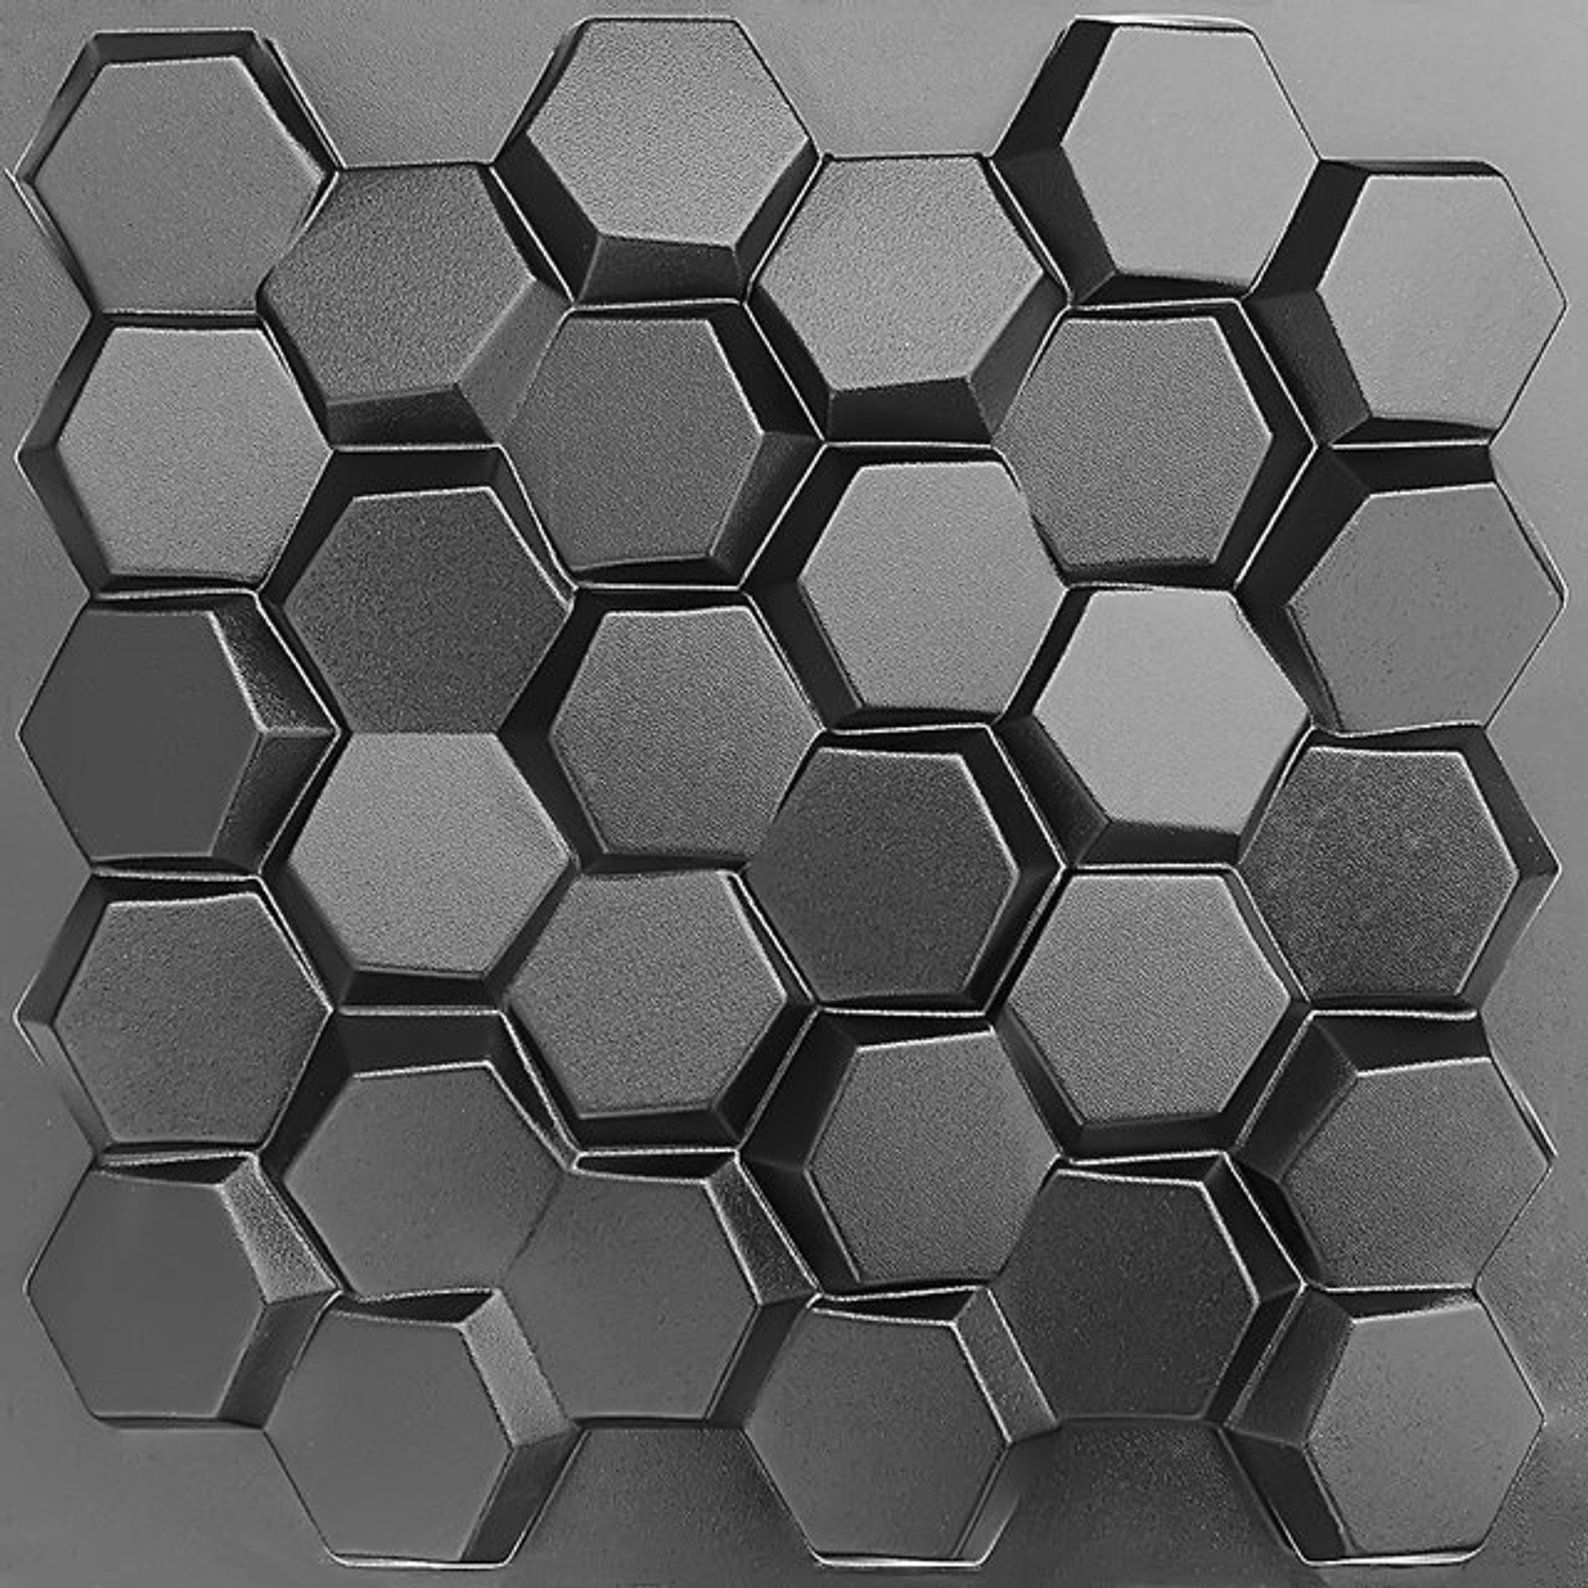 Honeycombs Abs Plastic Mold 3d Panel For Making From Plaster Gypsum Or Concrete Decor Wall Panels 3d Panels Plastic Molds Concrete Decor